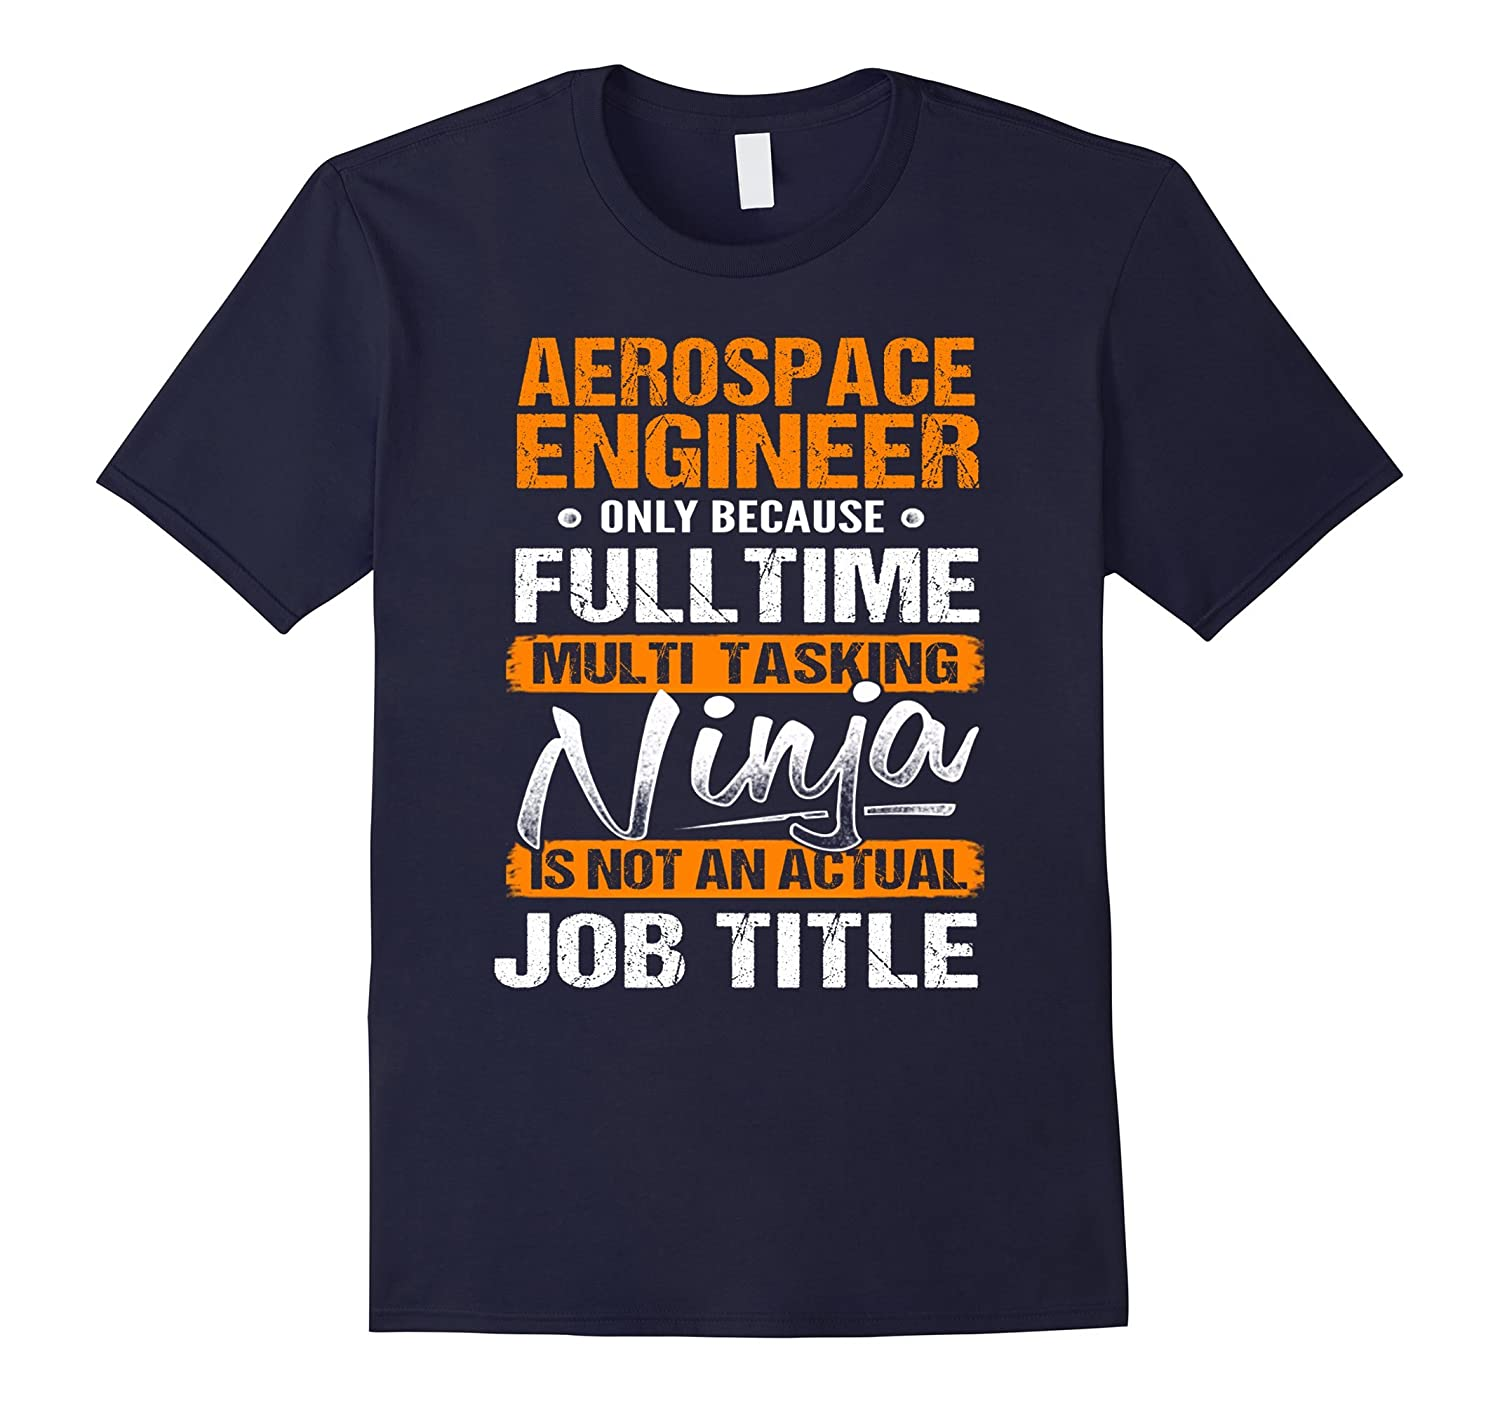 AEROSPACE ENGINEER - Ninja Job Title Funny T-Shirt-TJ